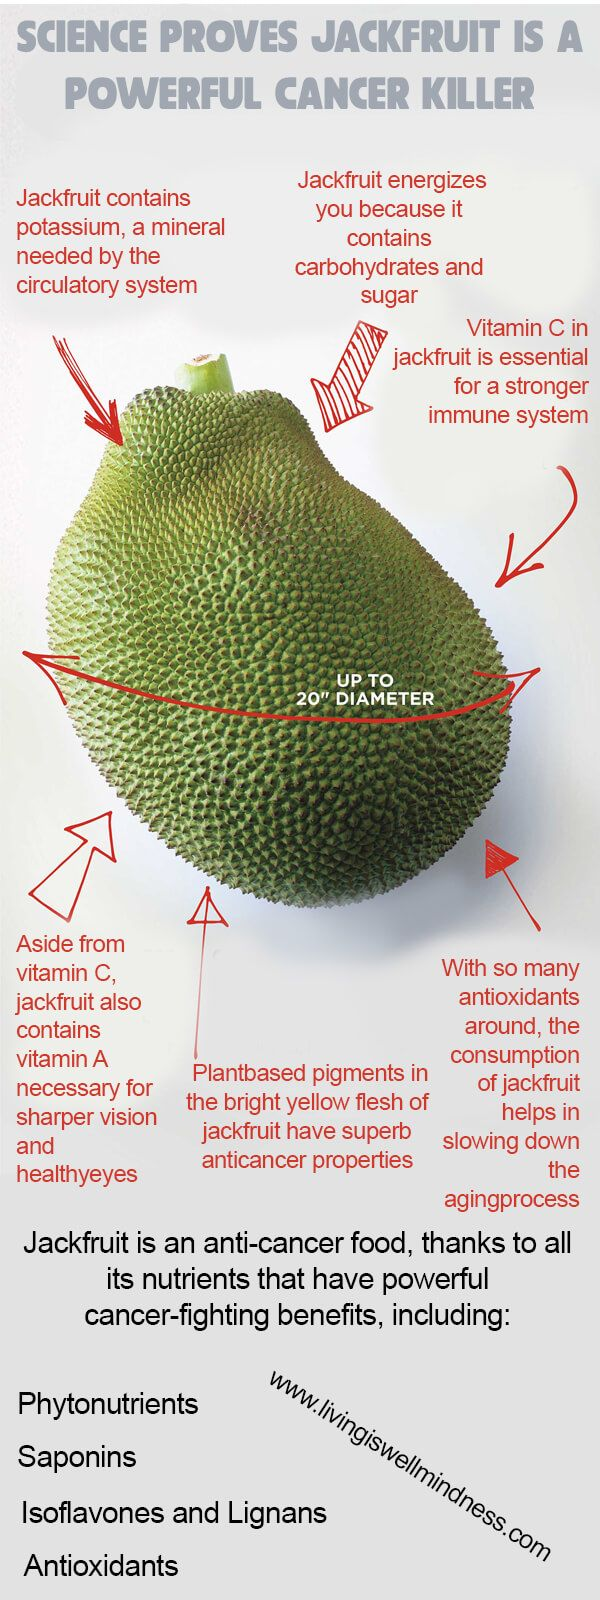 Jackfruit looks very similar to durian but it certainly doesn't smell and taste like the latter. It tastes really sweet when ripe.